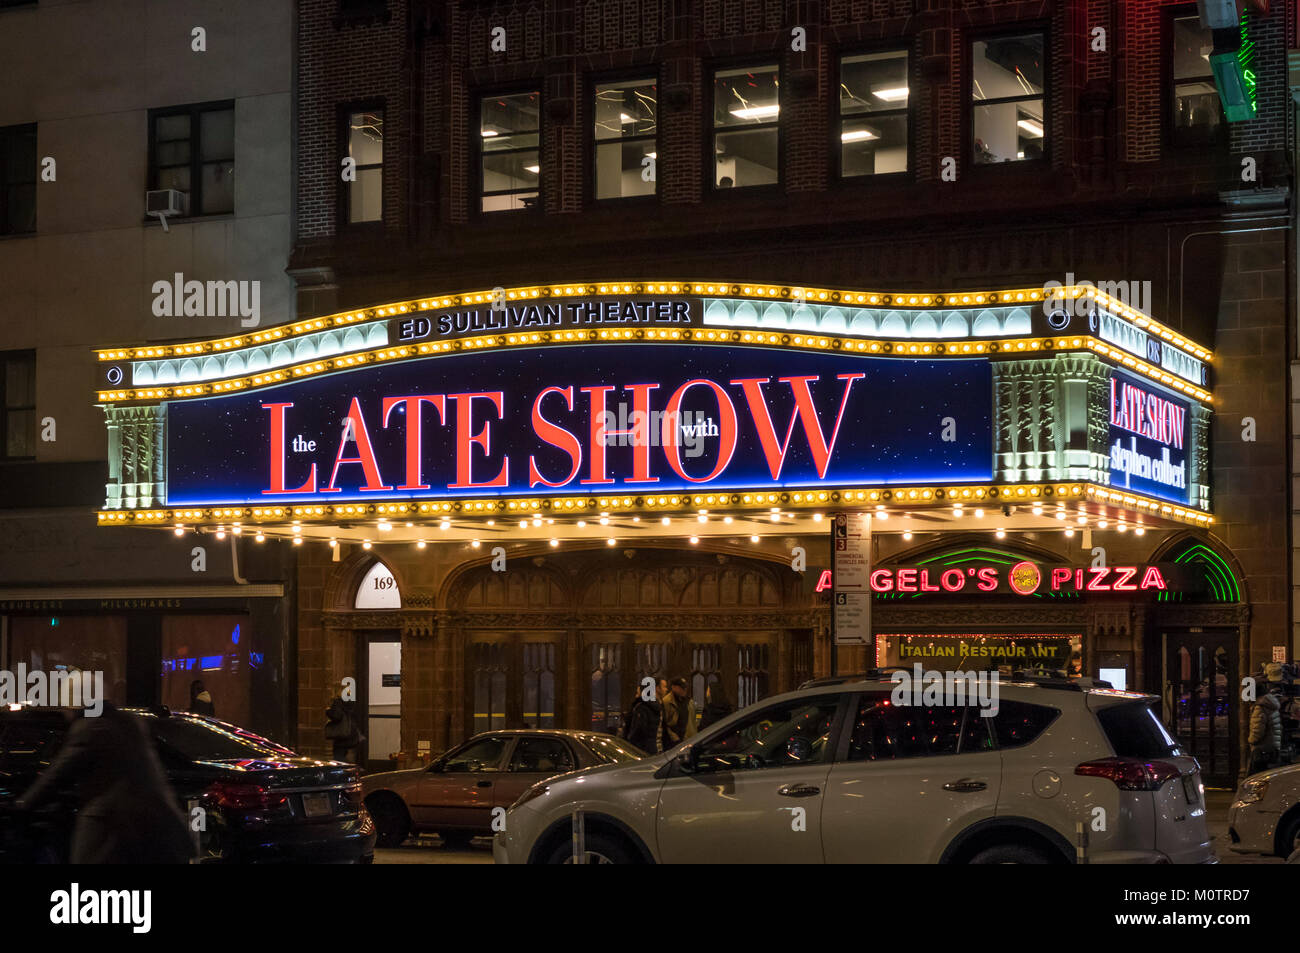 The Late Show at the Ed Sullivan Theater in Broadway Theatre District - Stock Image